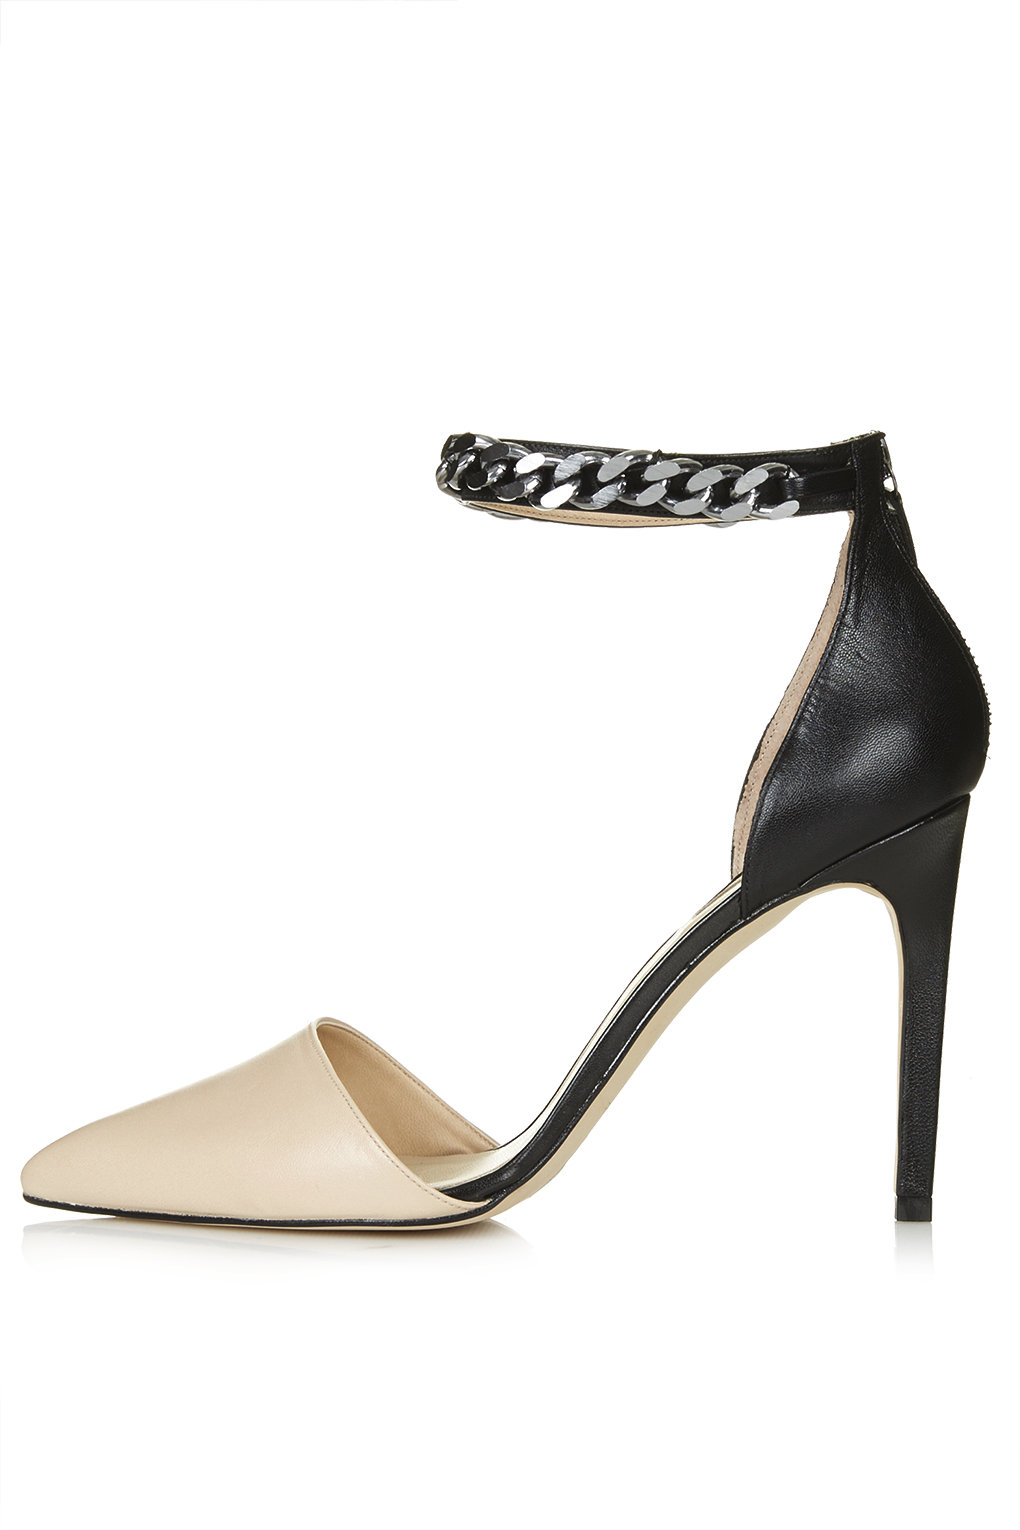 GERANIAM Chain Court Shoes - View All - Shoes